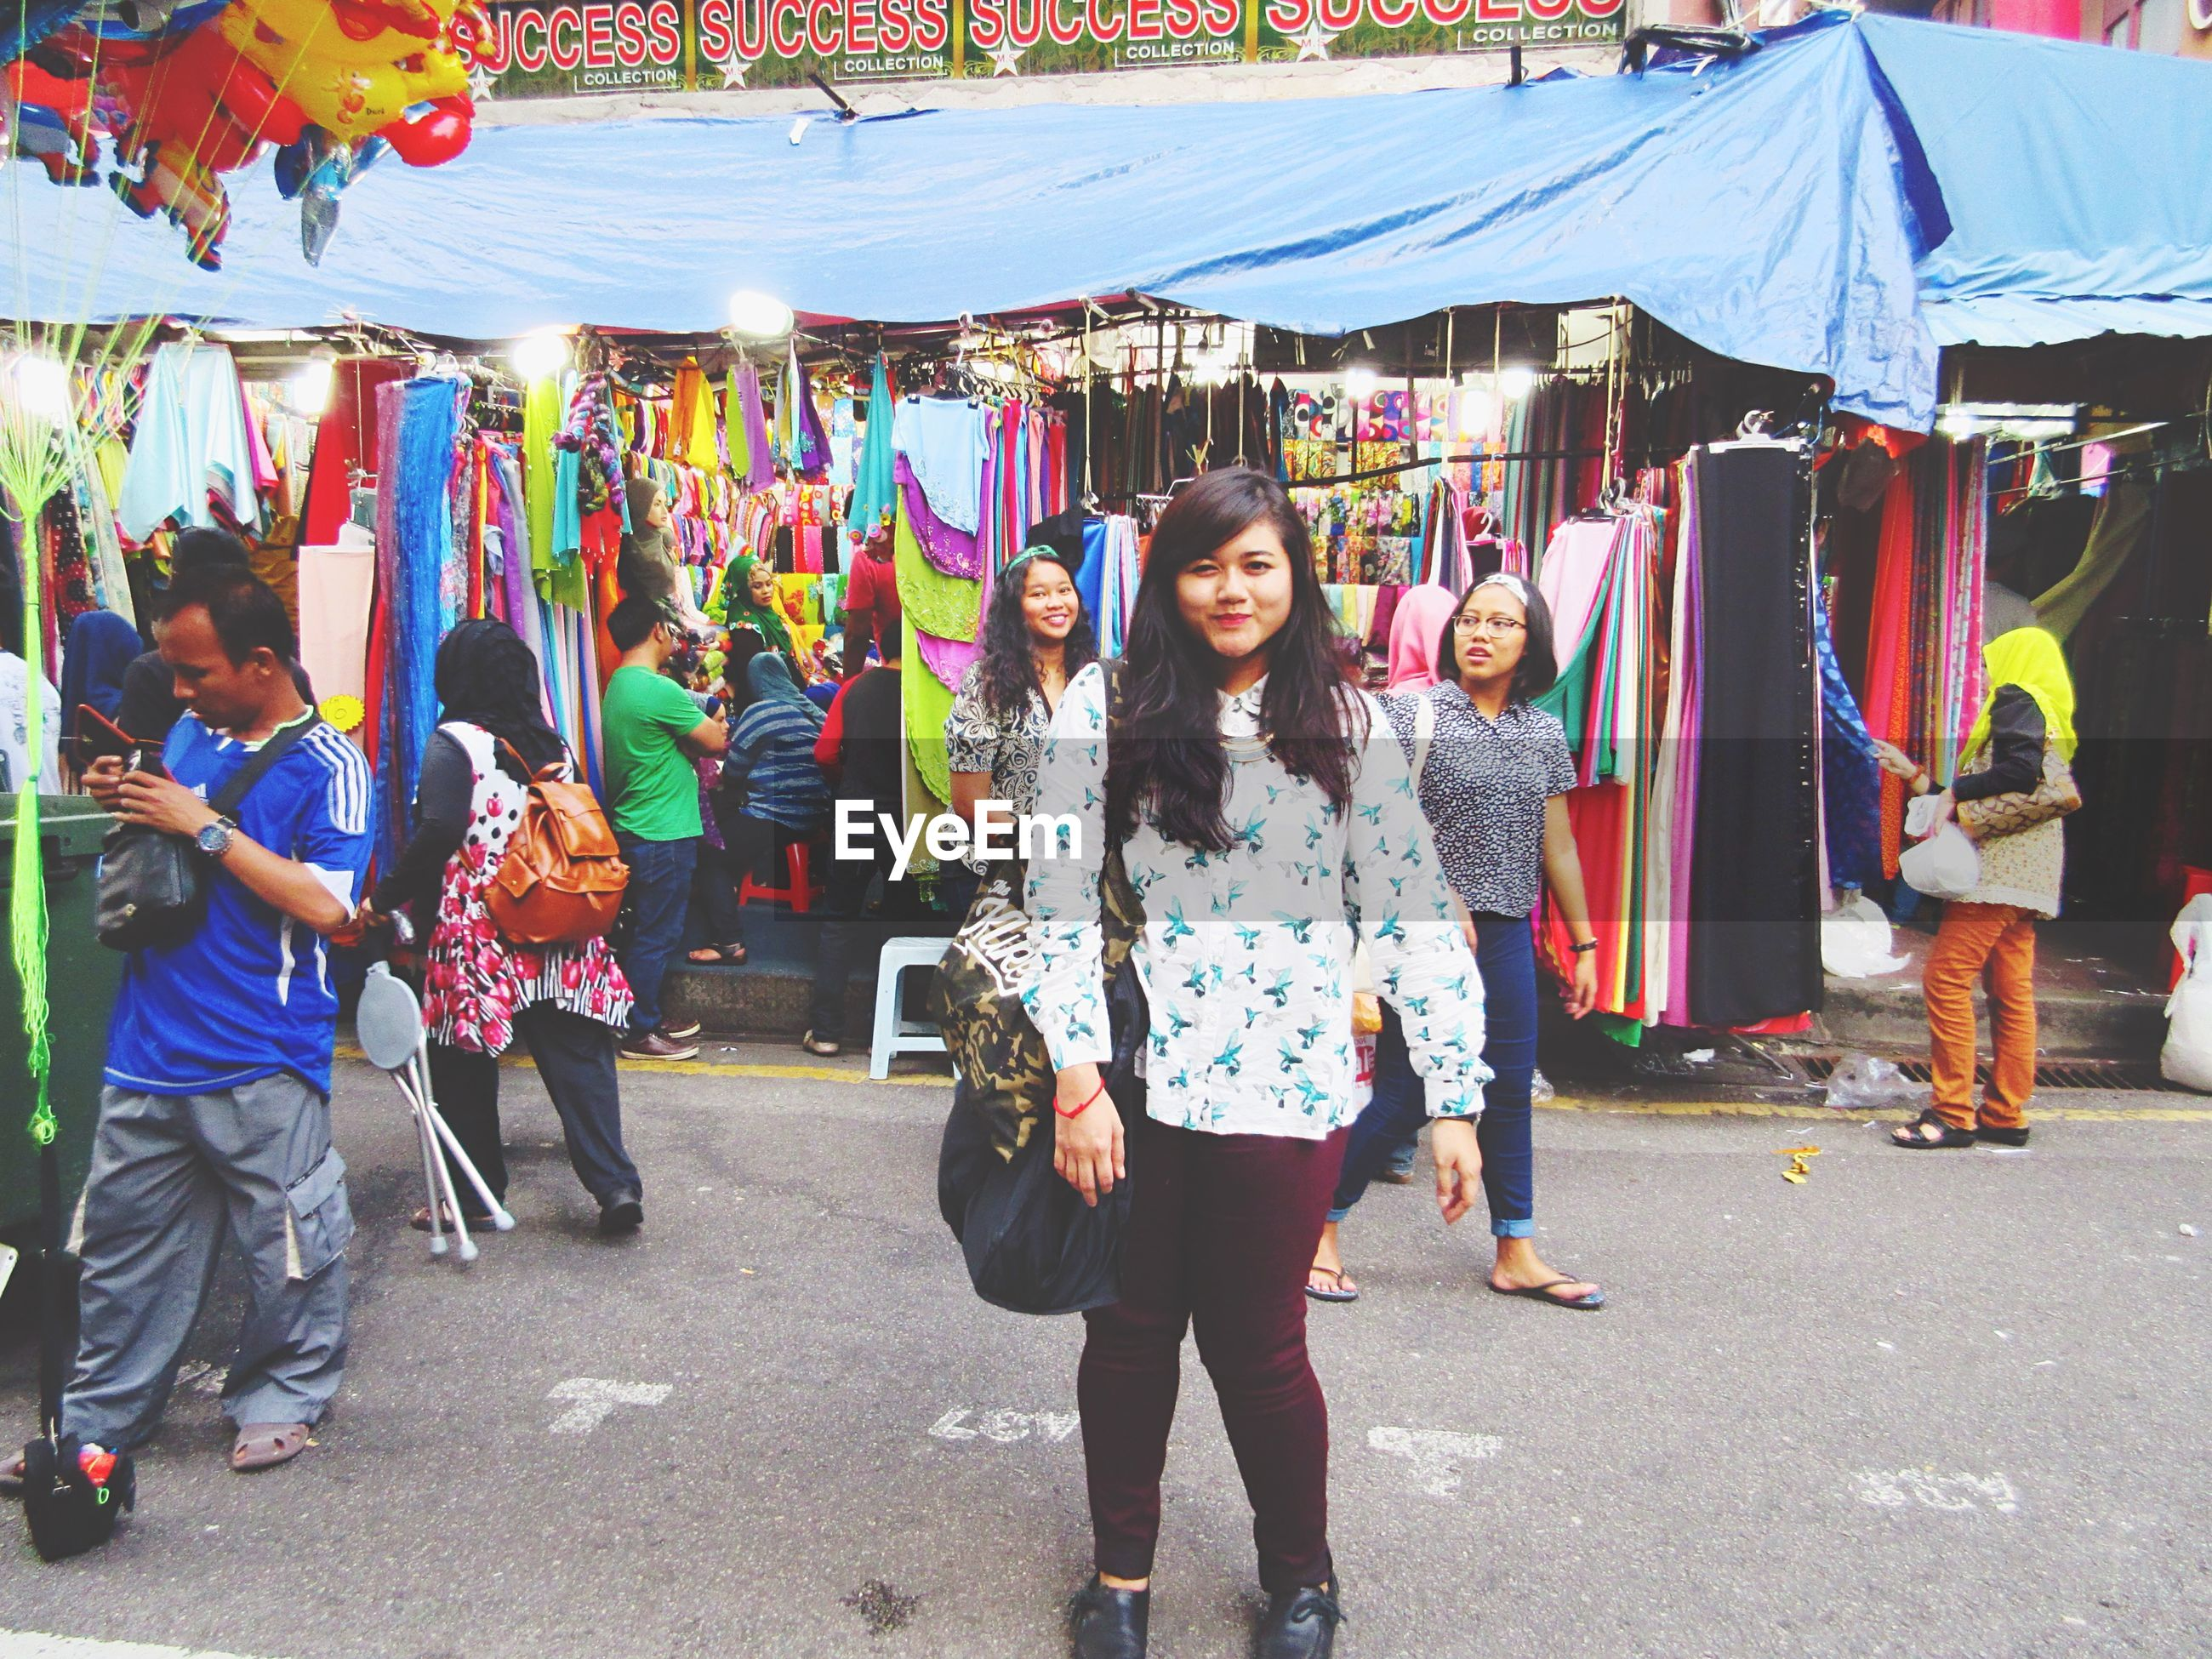 lifestyles, leisure activity, casual clothing, large group of people, person, traditional clothing, men, full length, standing, street, cultures, tradition, walking, market, happiness, market stall, celebration, togetherness, traditional festival